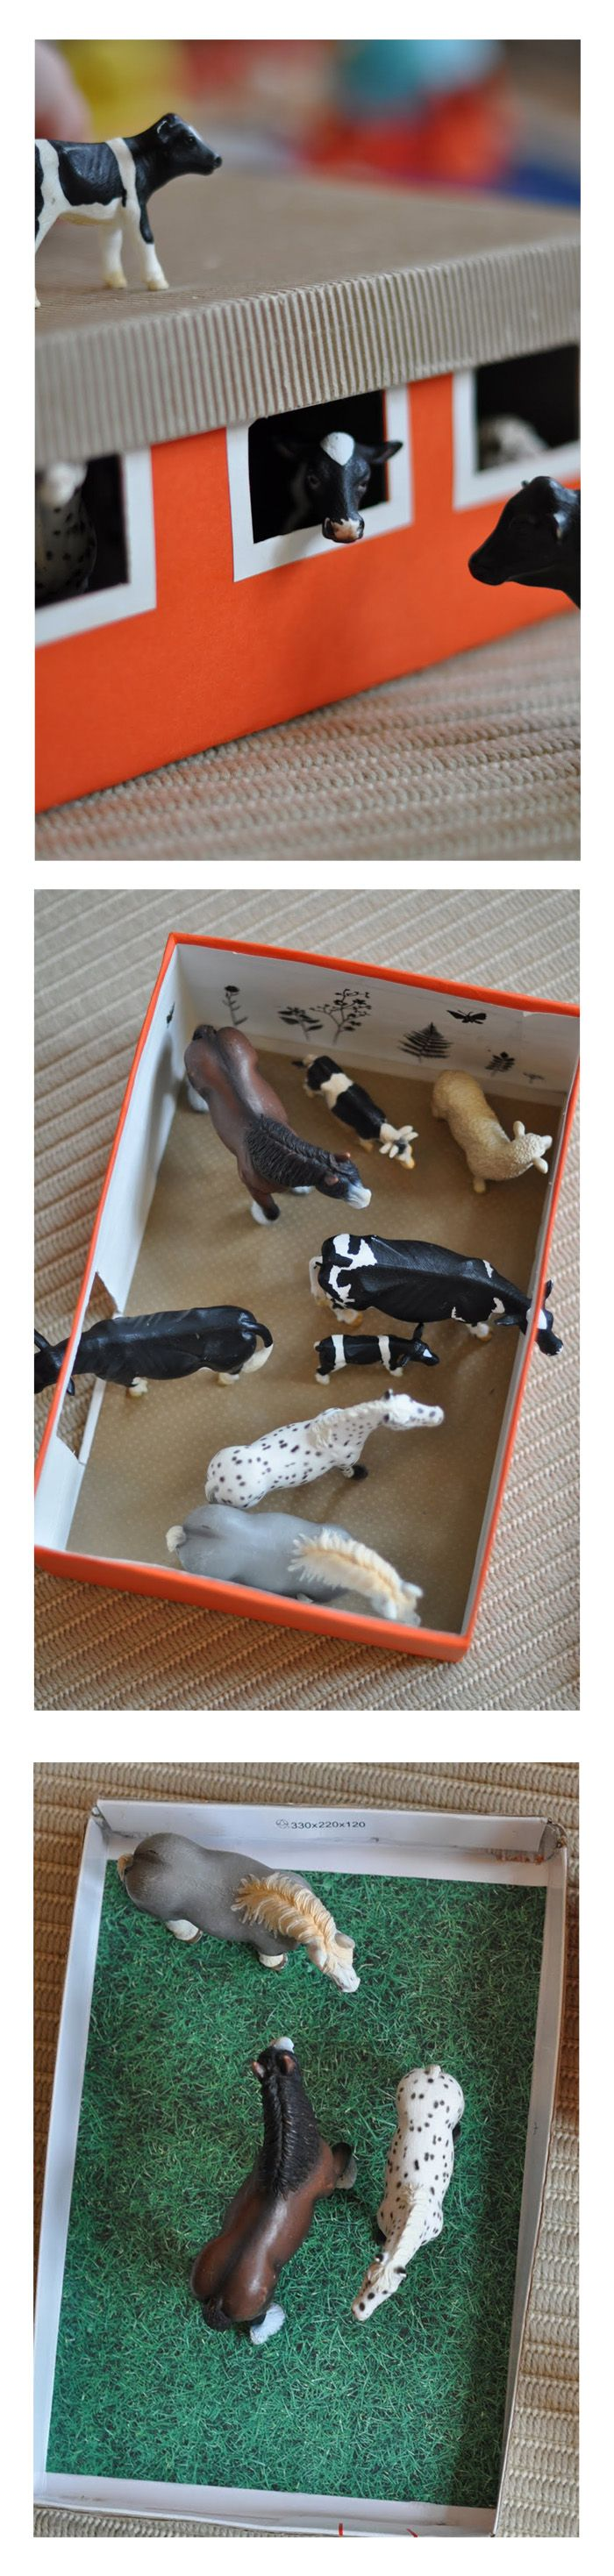 Shoebox farm #kids_activity #kiddos